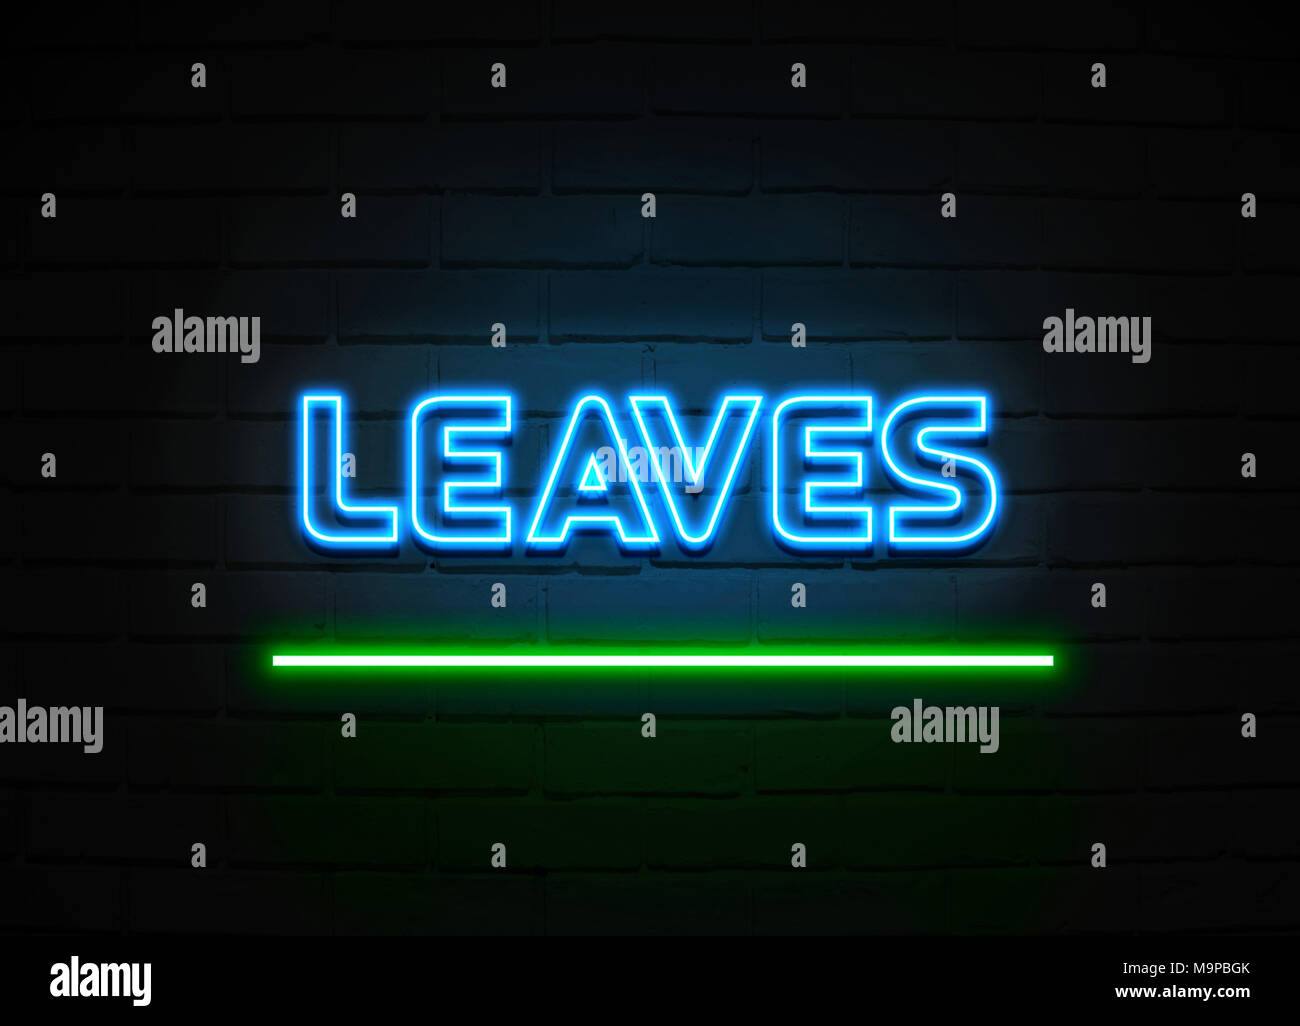 Leaves neon sign - Glowing Neon Sign on brickwall wall - 3D rendered